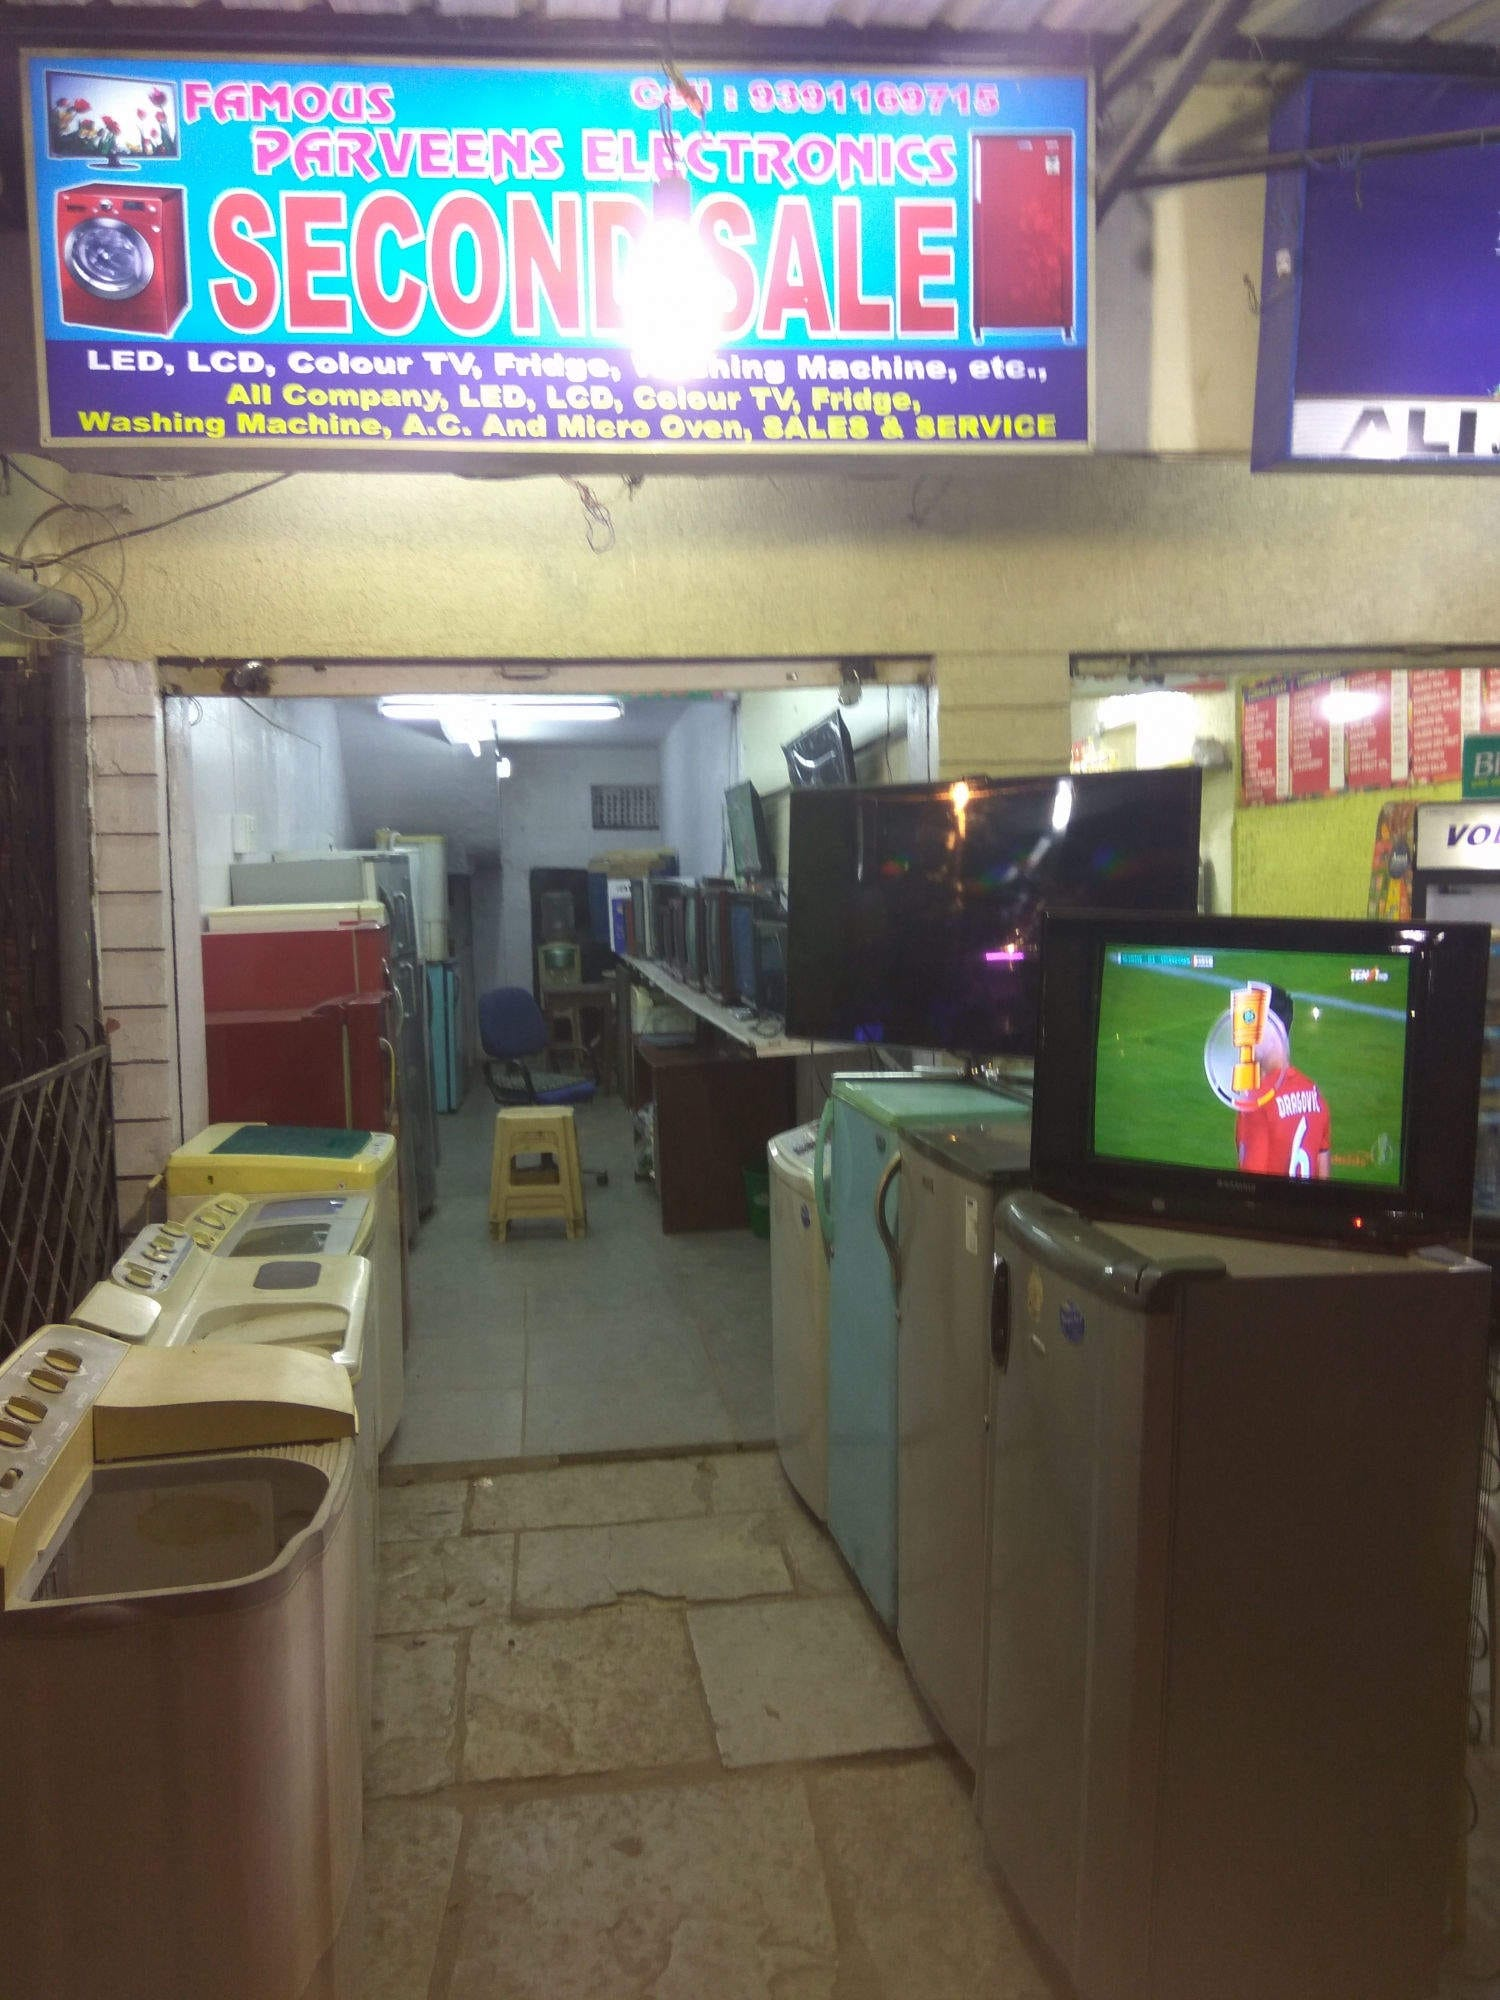 Top 50 Second Hand Tv Dealers in Hyderabad - Best Used Tv